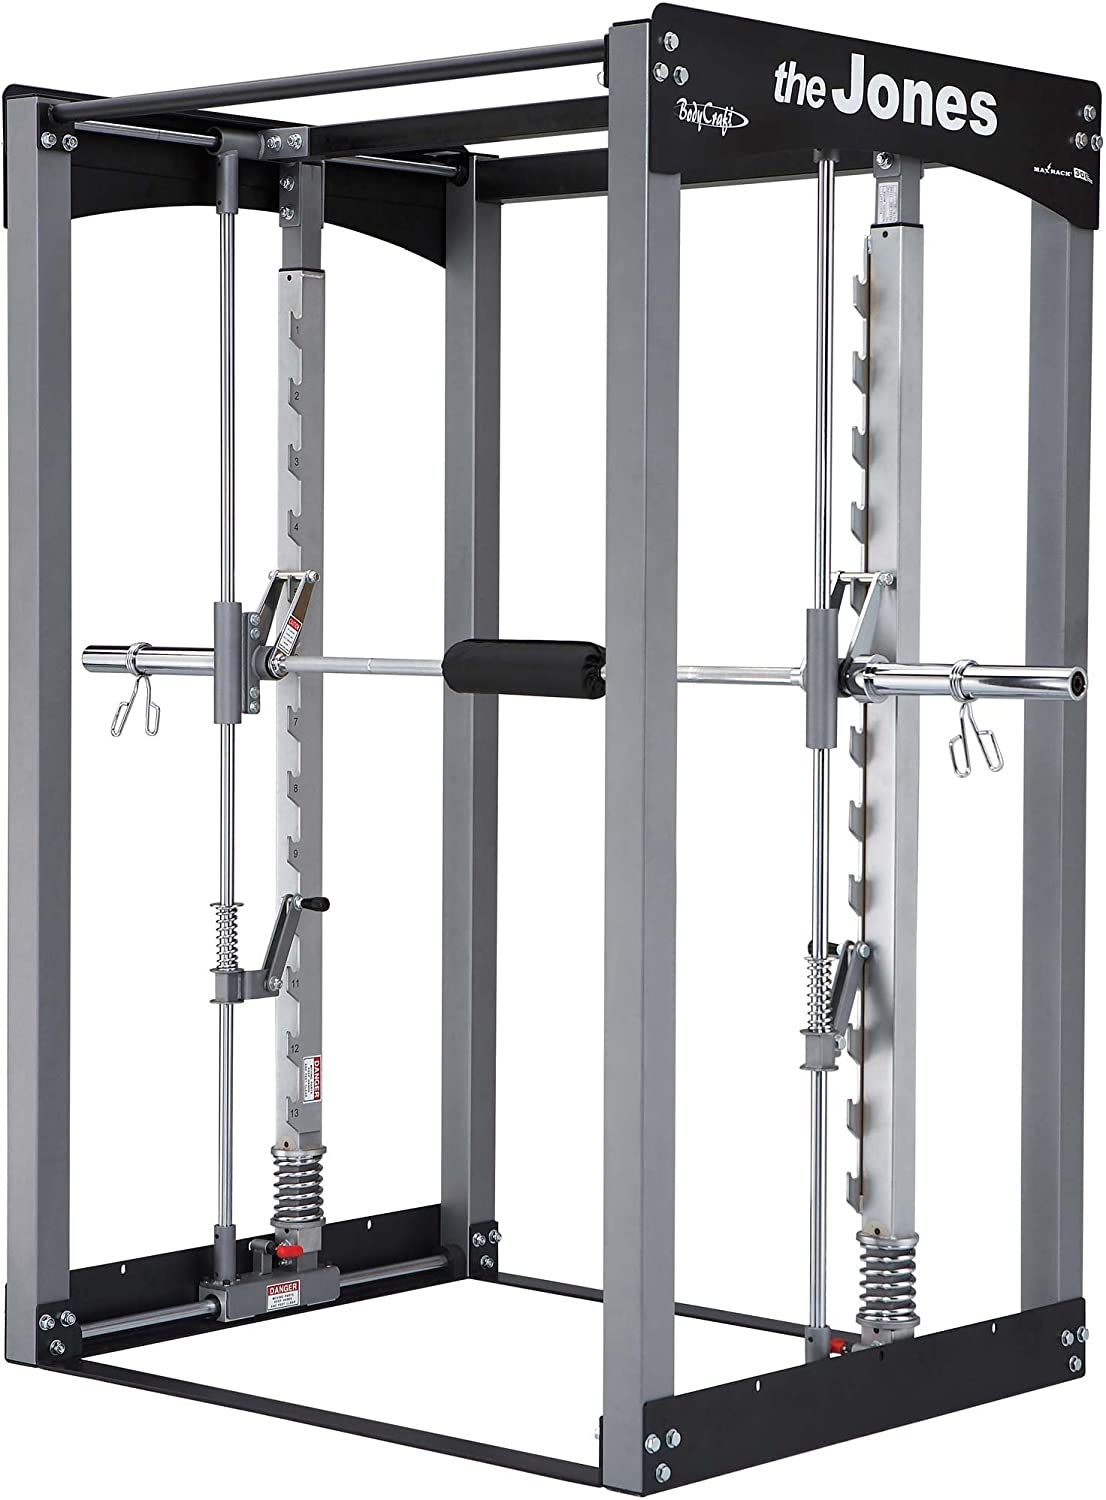 Bodycraft Jones máquina Club con 7 ft Power Bar: Amazon.es: Deportes y aire libre